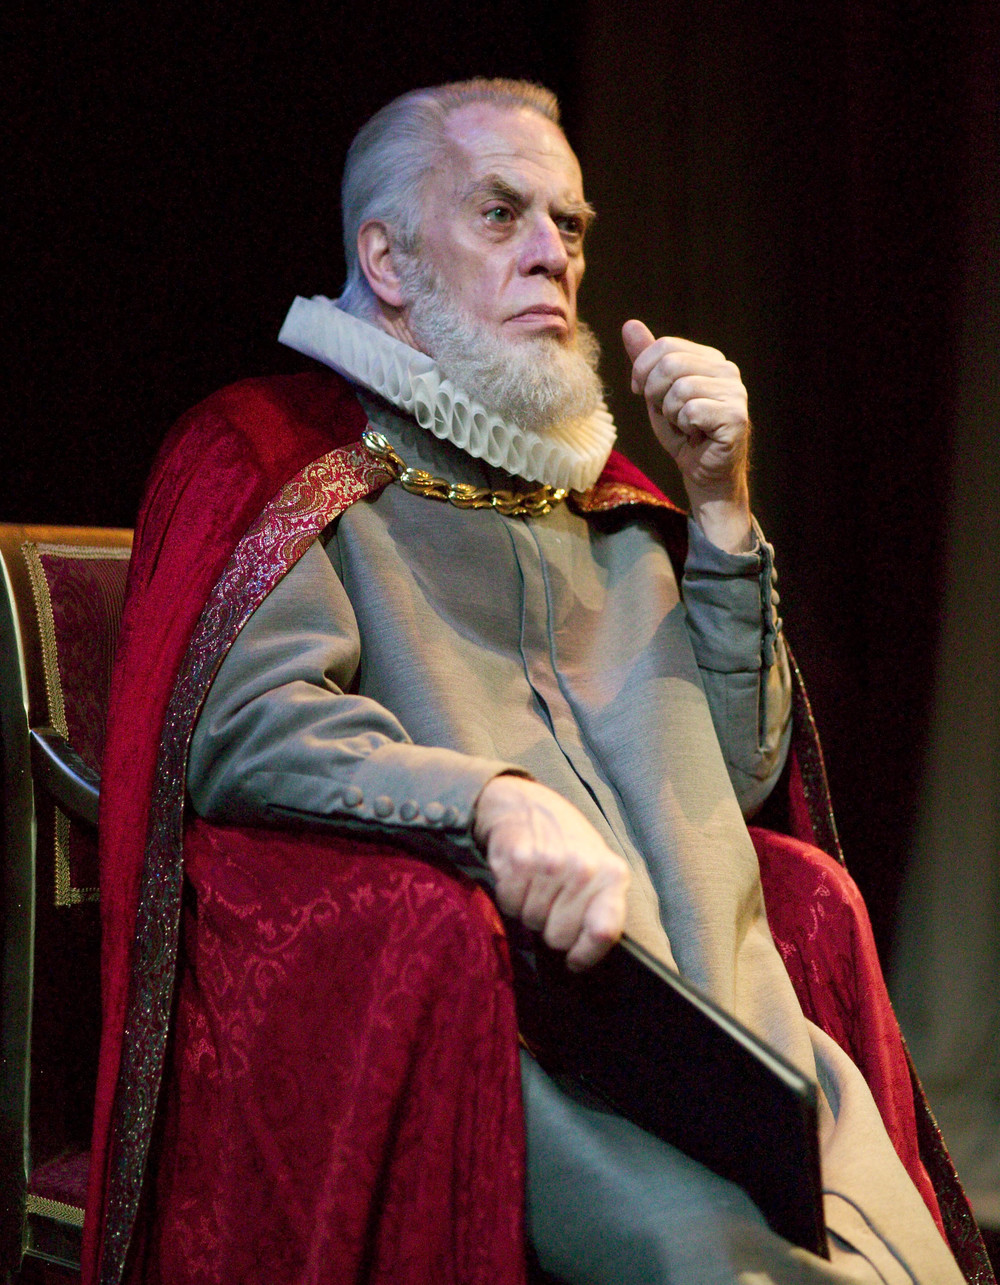 Apollo Dukakis as the Duke of Venice